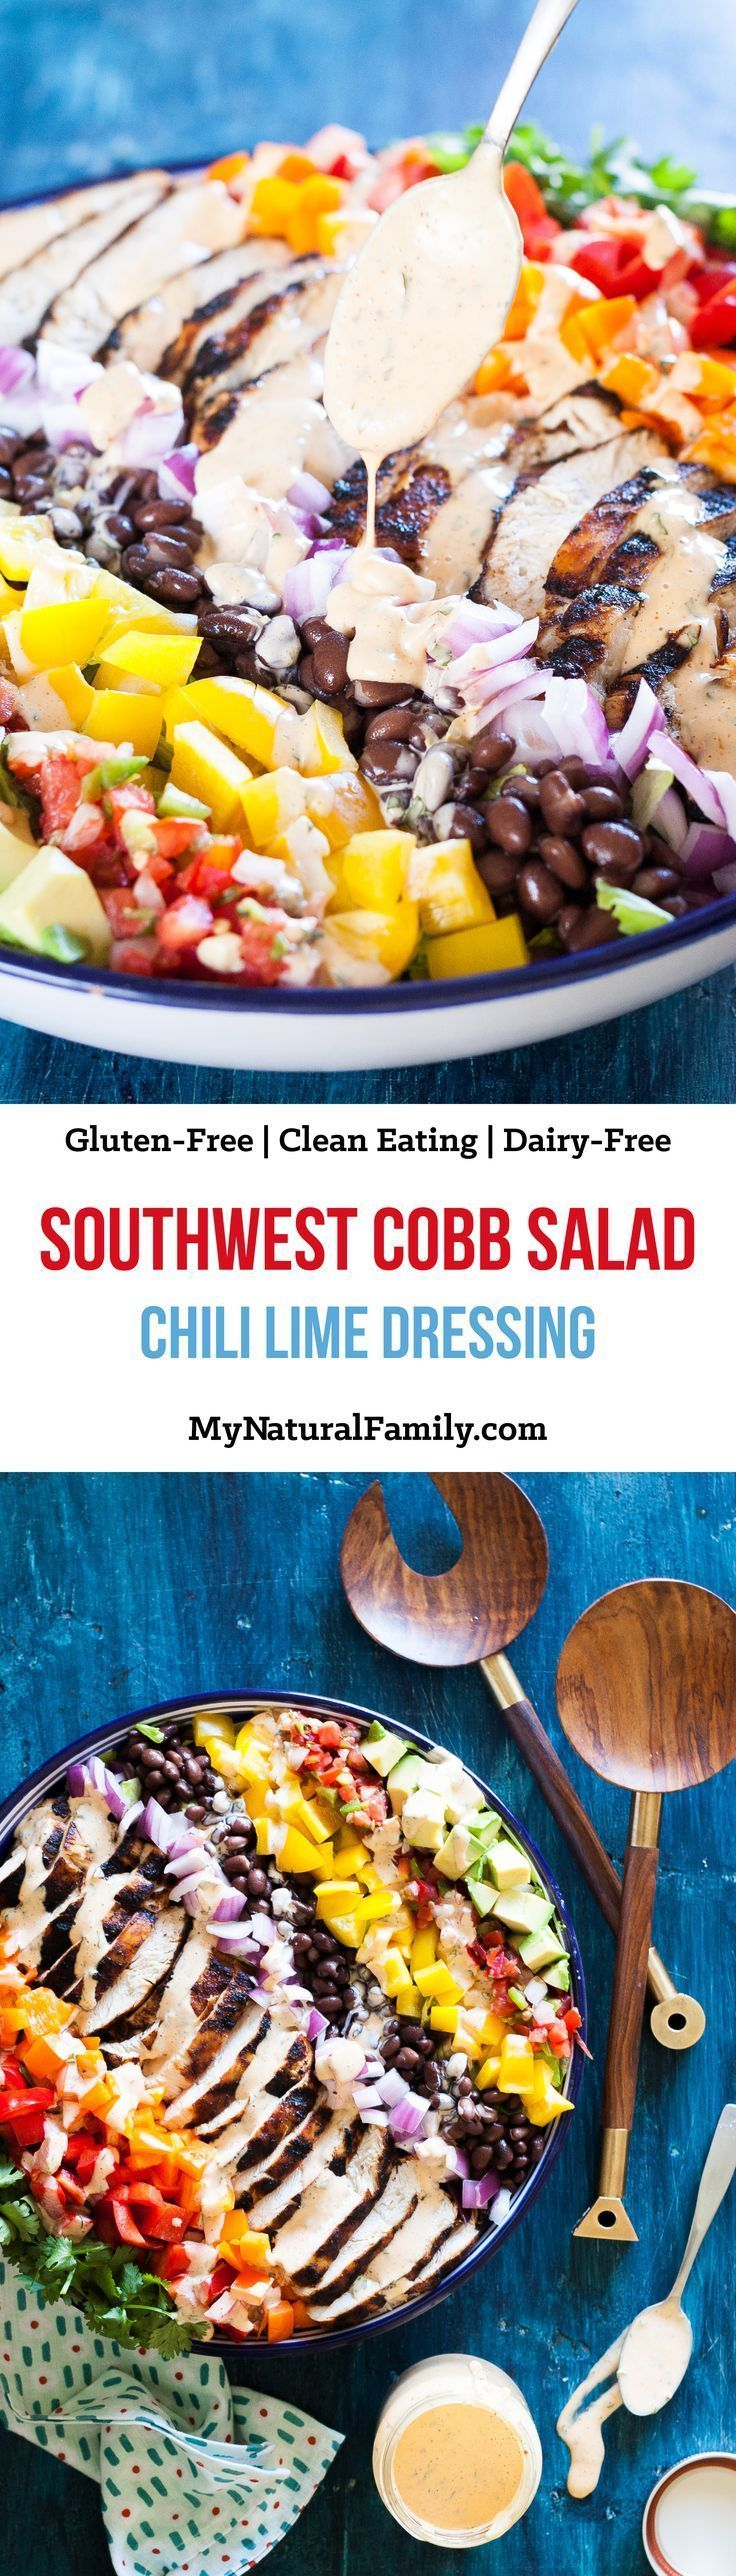 Southwest Cobb Salad with Smokey Chili Lime Dressing Recipe {Paleo, Gluten-Free, Clean Eating, Dairy-Free, Whole30}